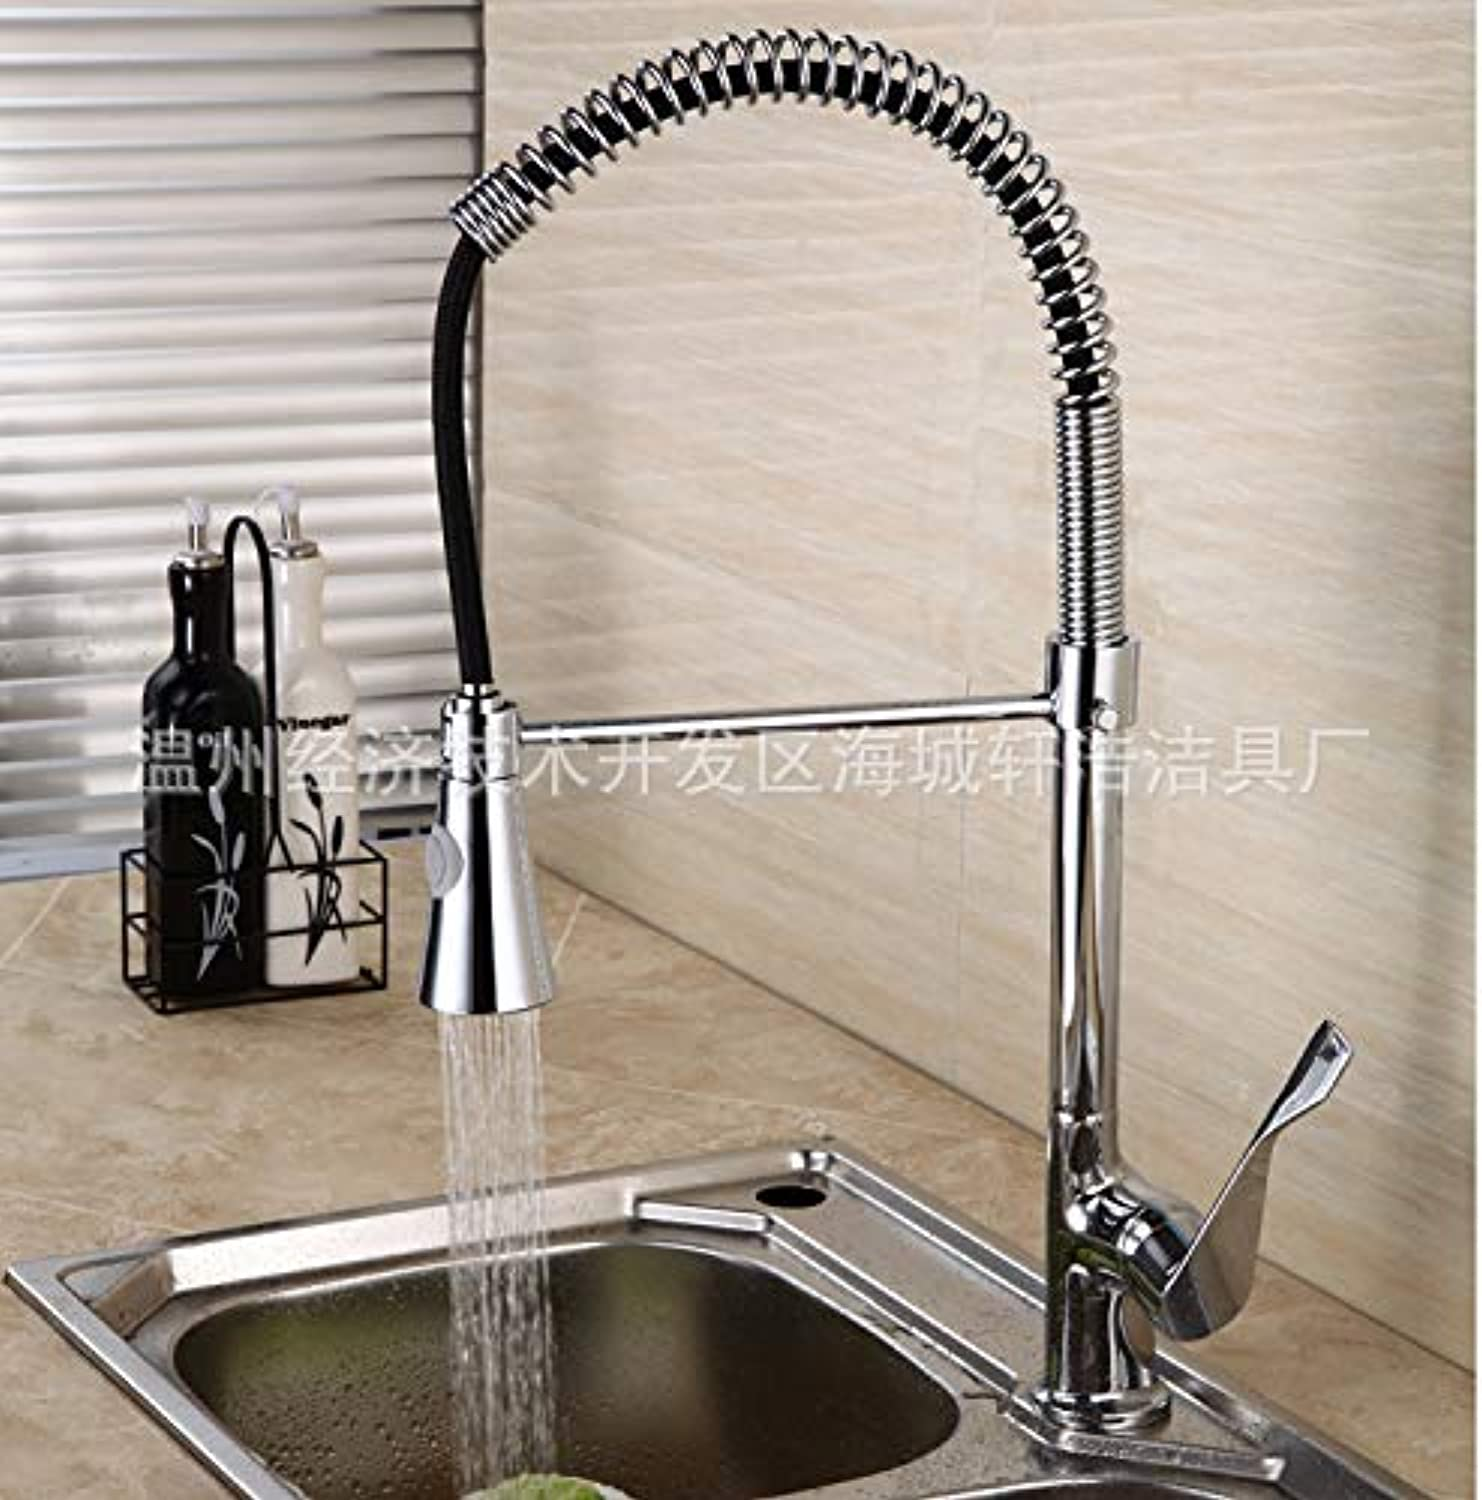 redOOY Taps Faucet Dish Basin Sink Faucet Kitchen Pull Double Outlet Sink